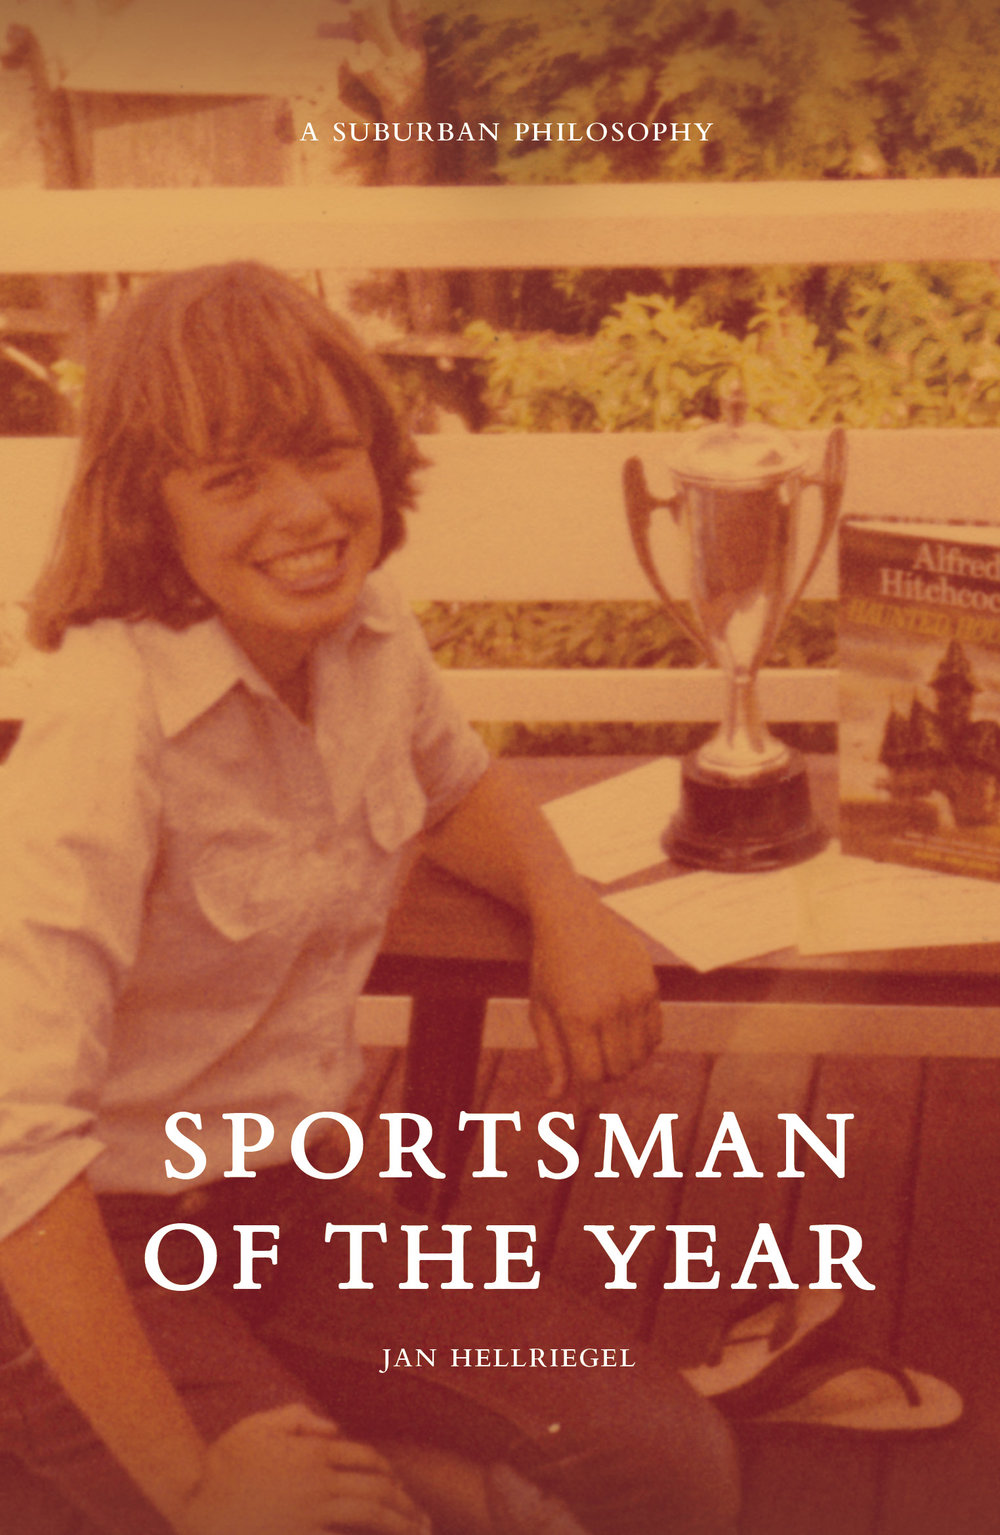 SPORTSMAN OF THE YEAR - A Suburban Philosophy  (Book with music) written by Jan Hellriegel